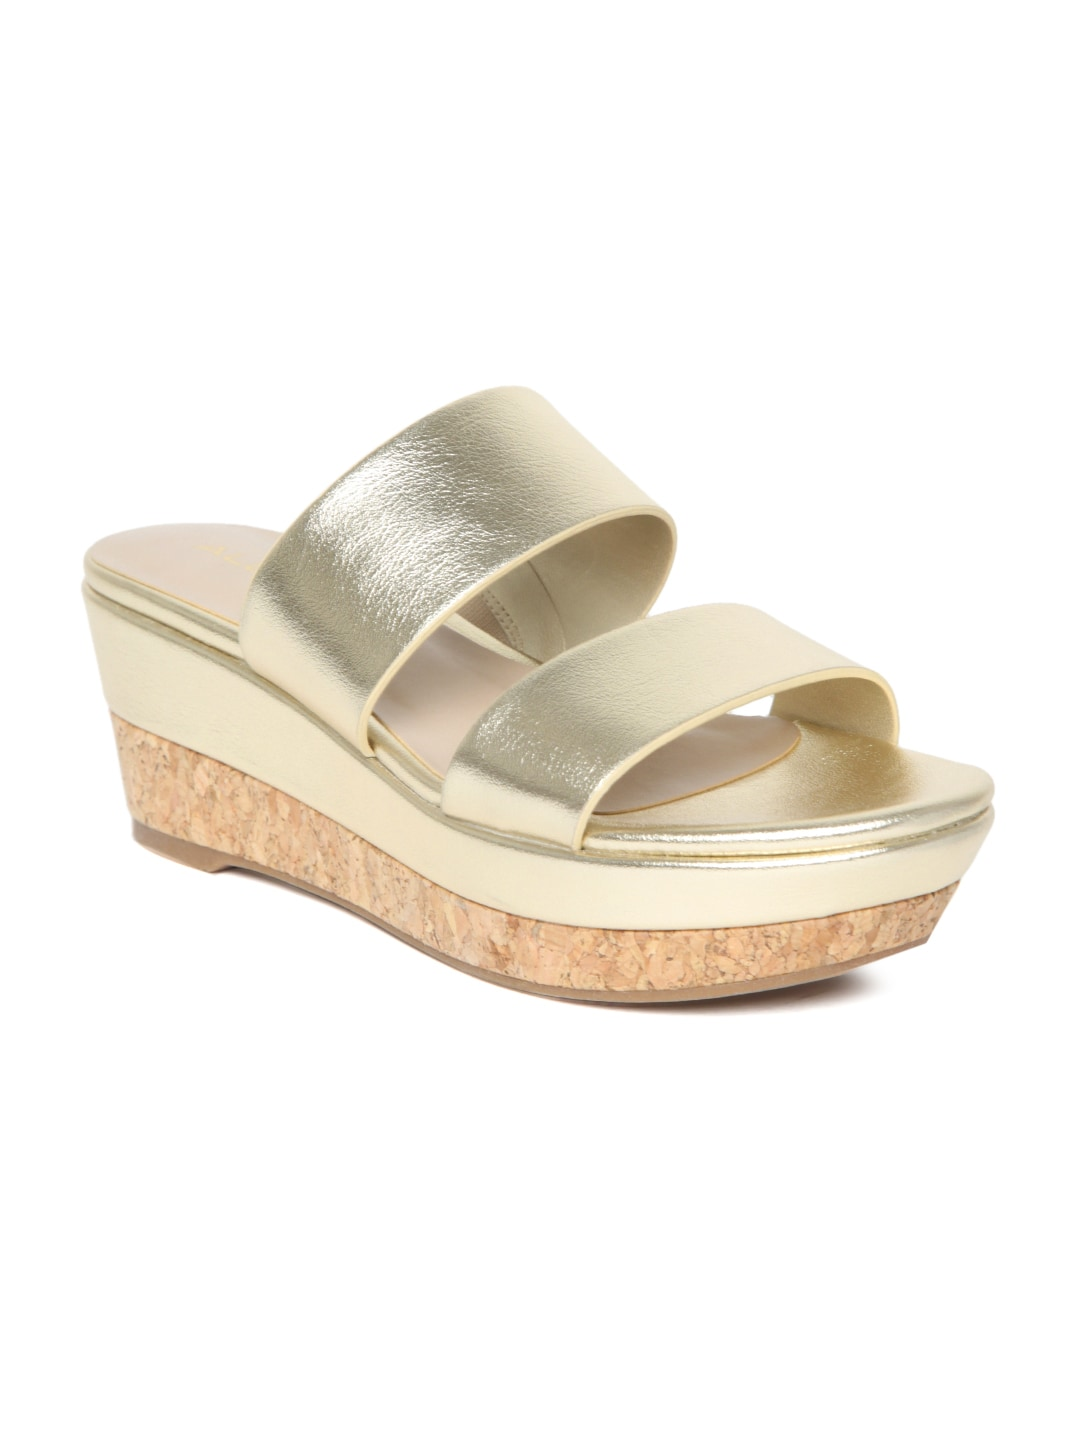 ALDO Women Gold-Toned Solid Sandals